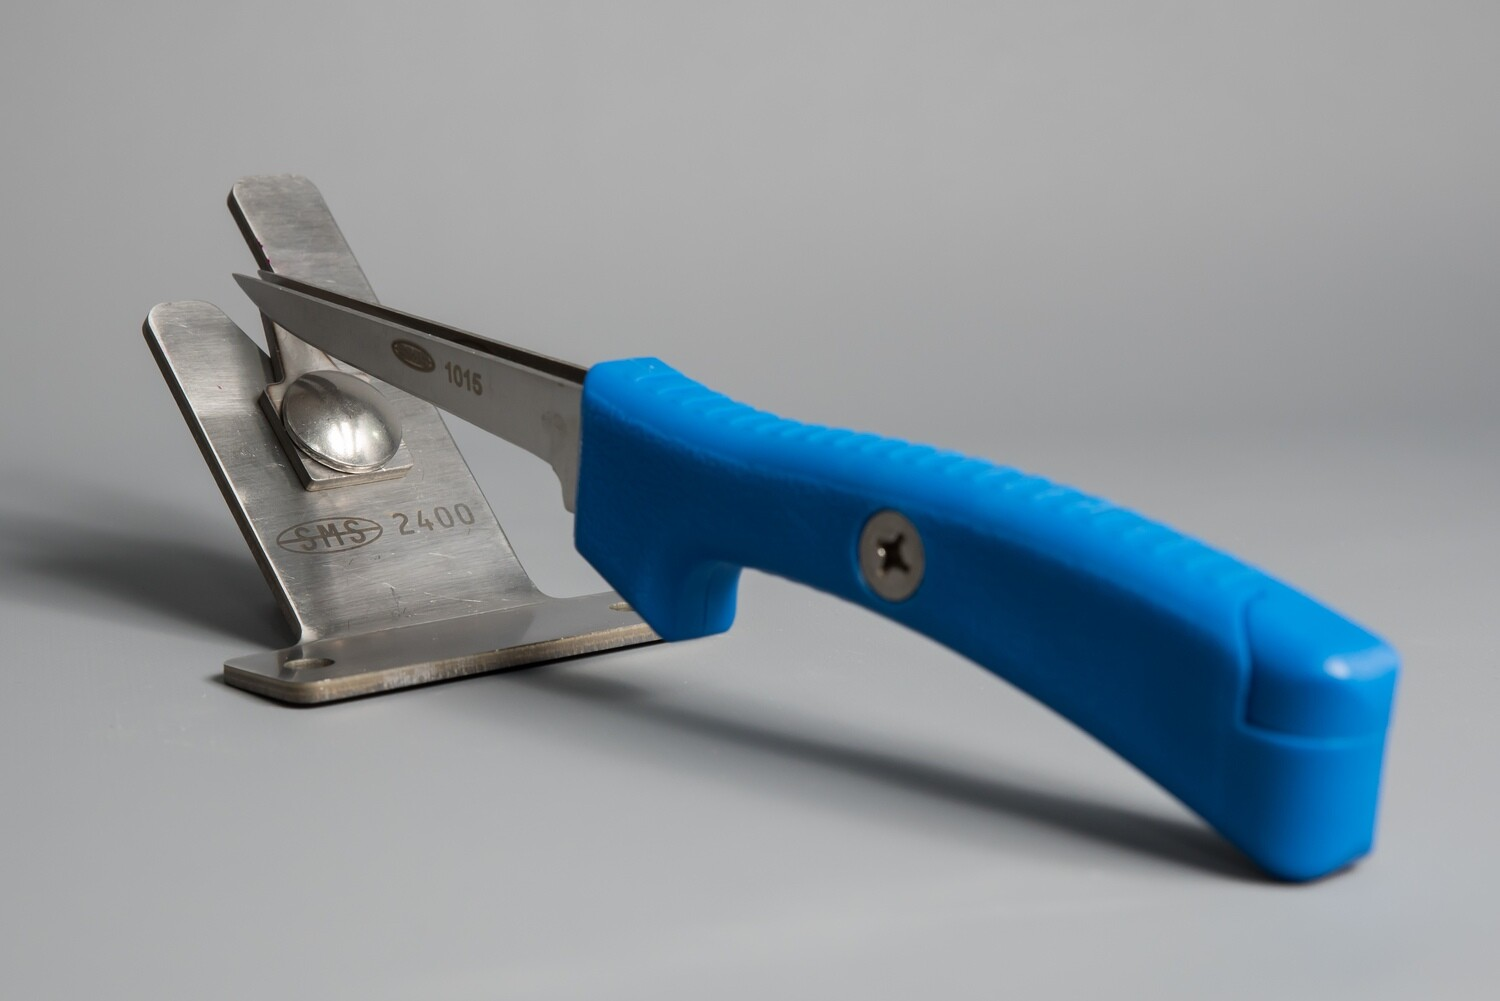 SMS Double Blade Tender Knife